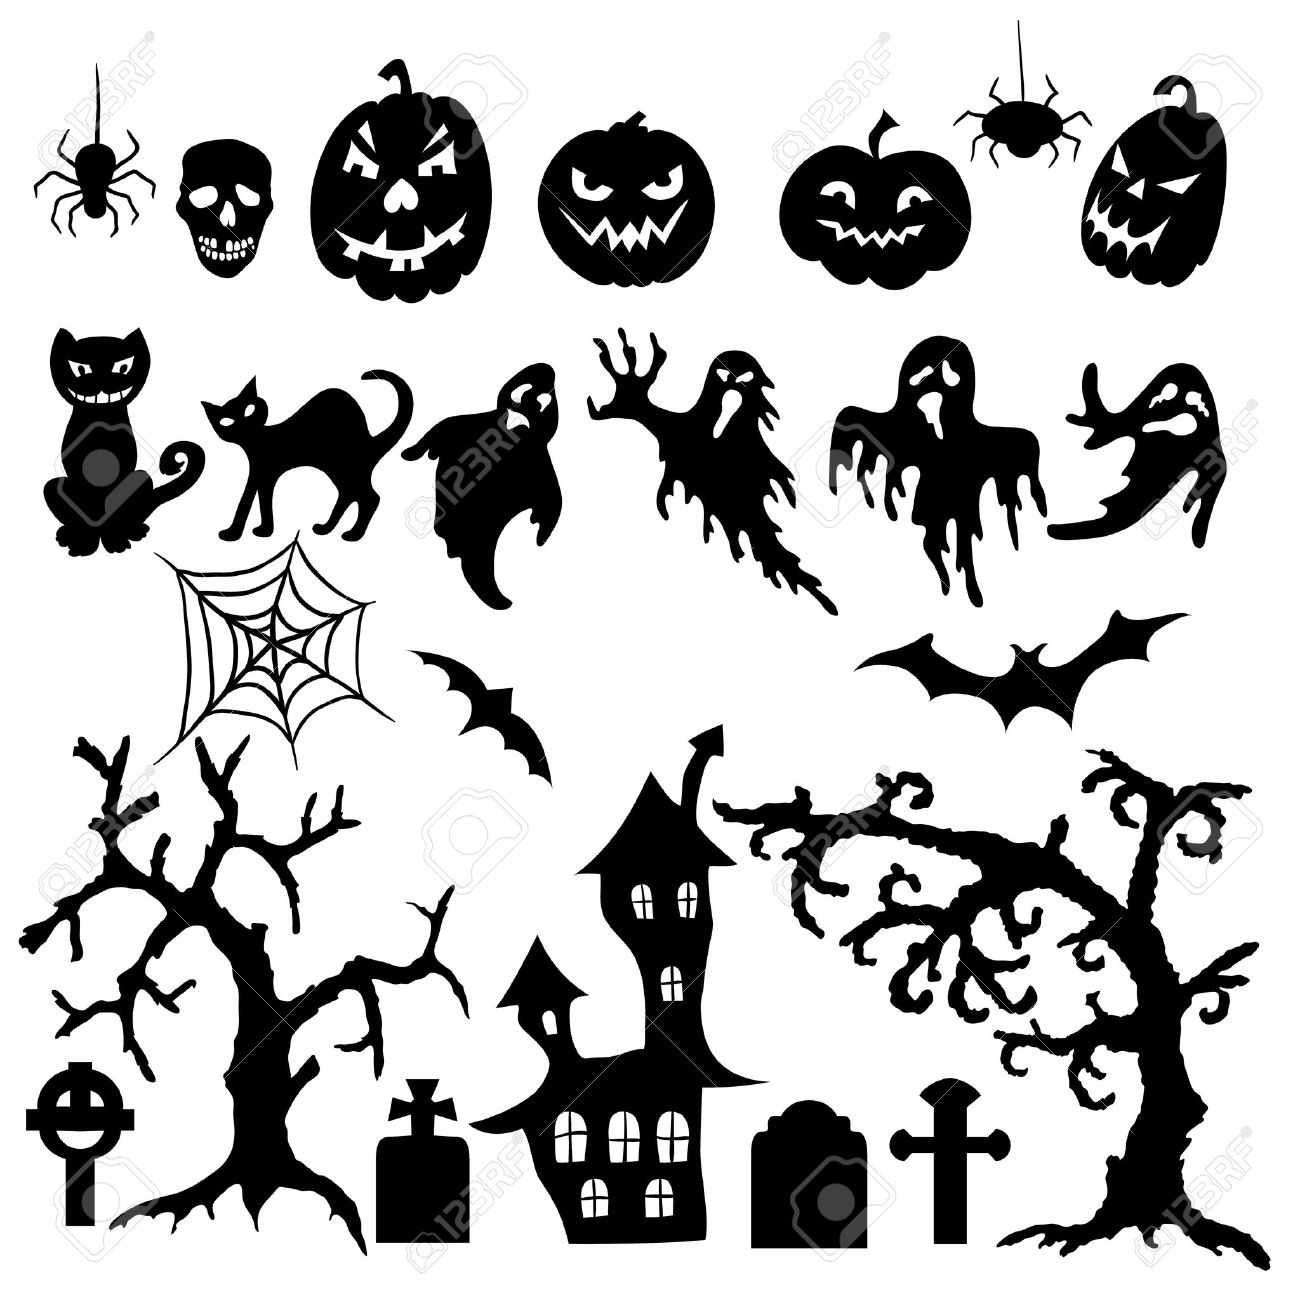 Set of halloween silhouette on white background.